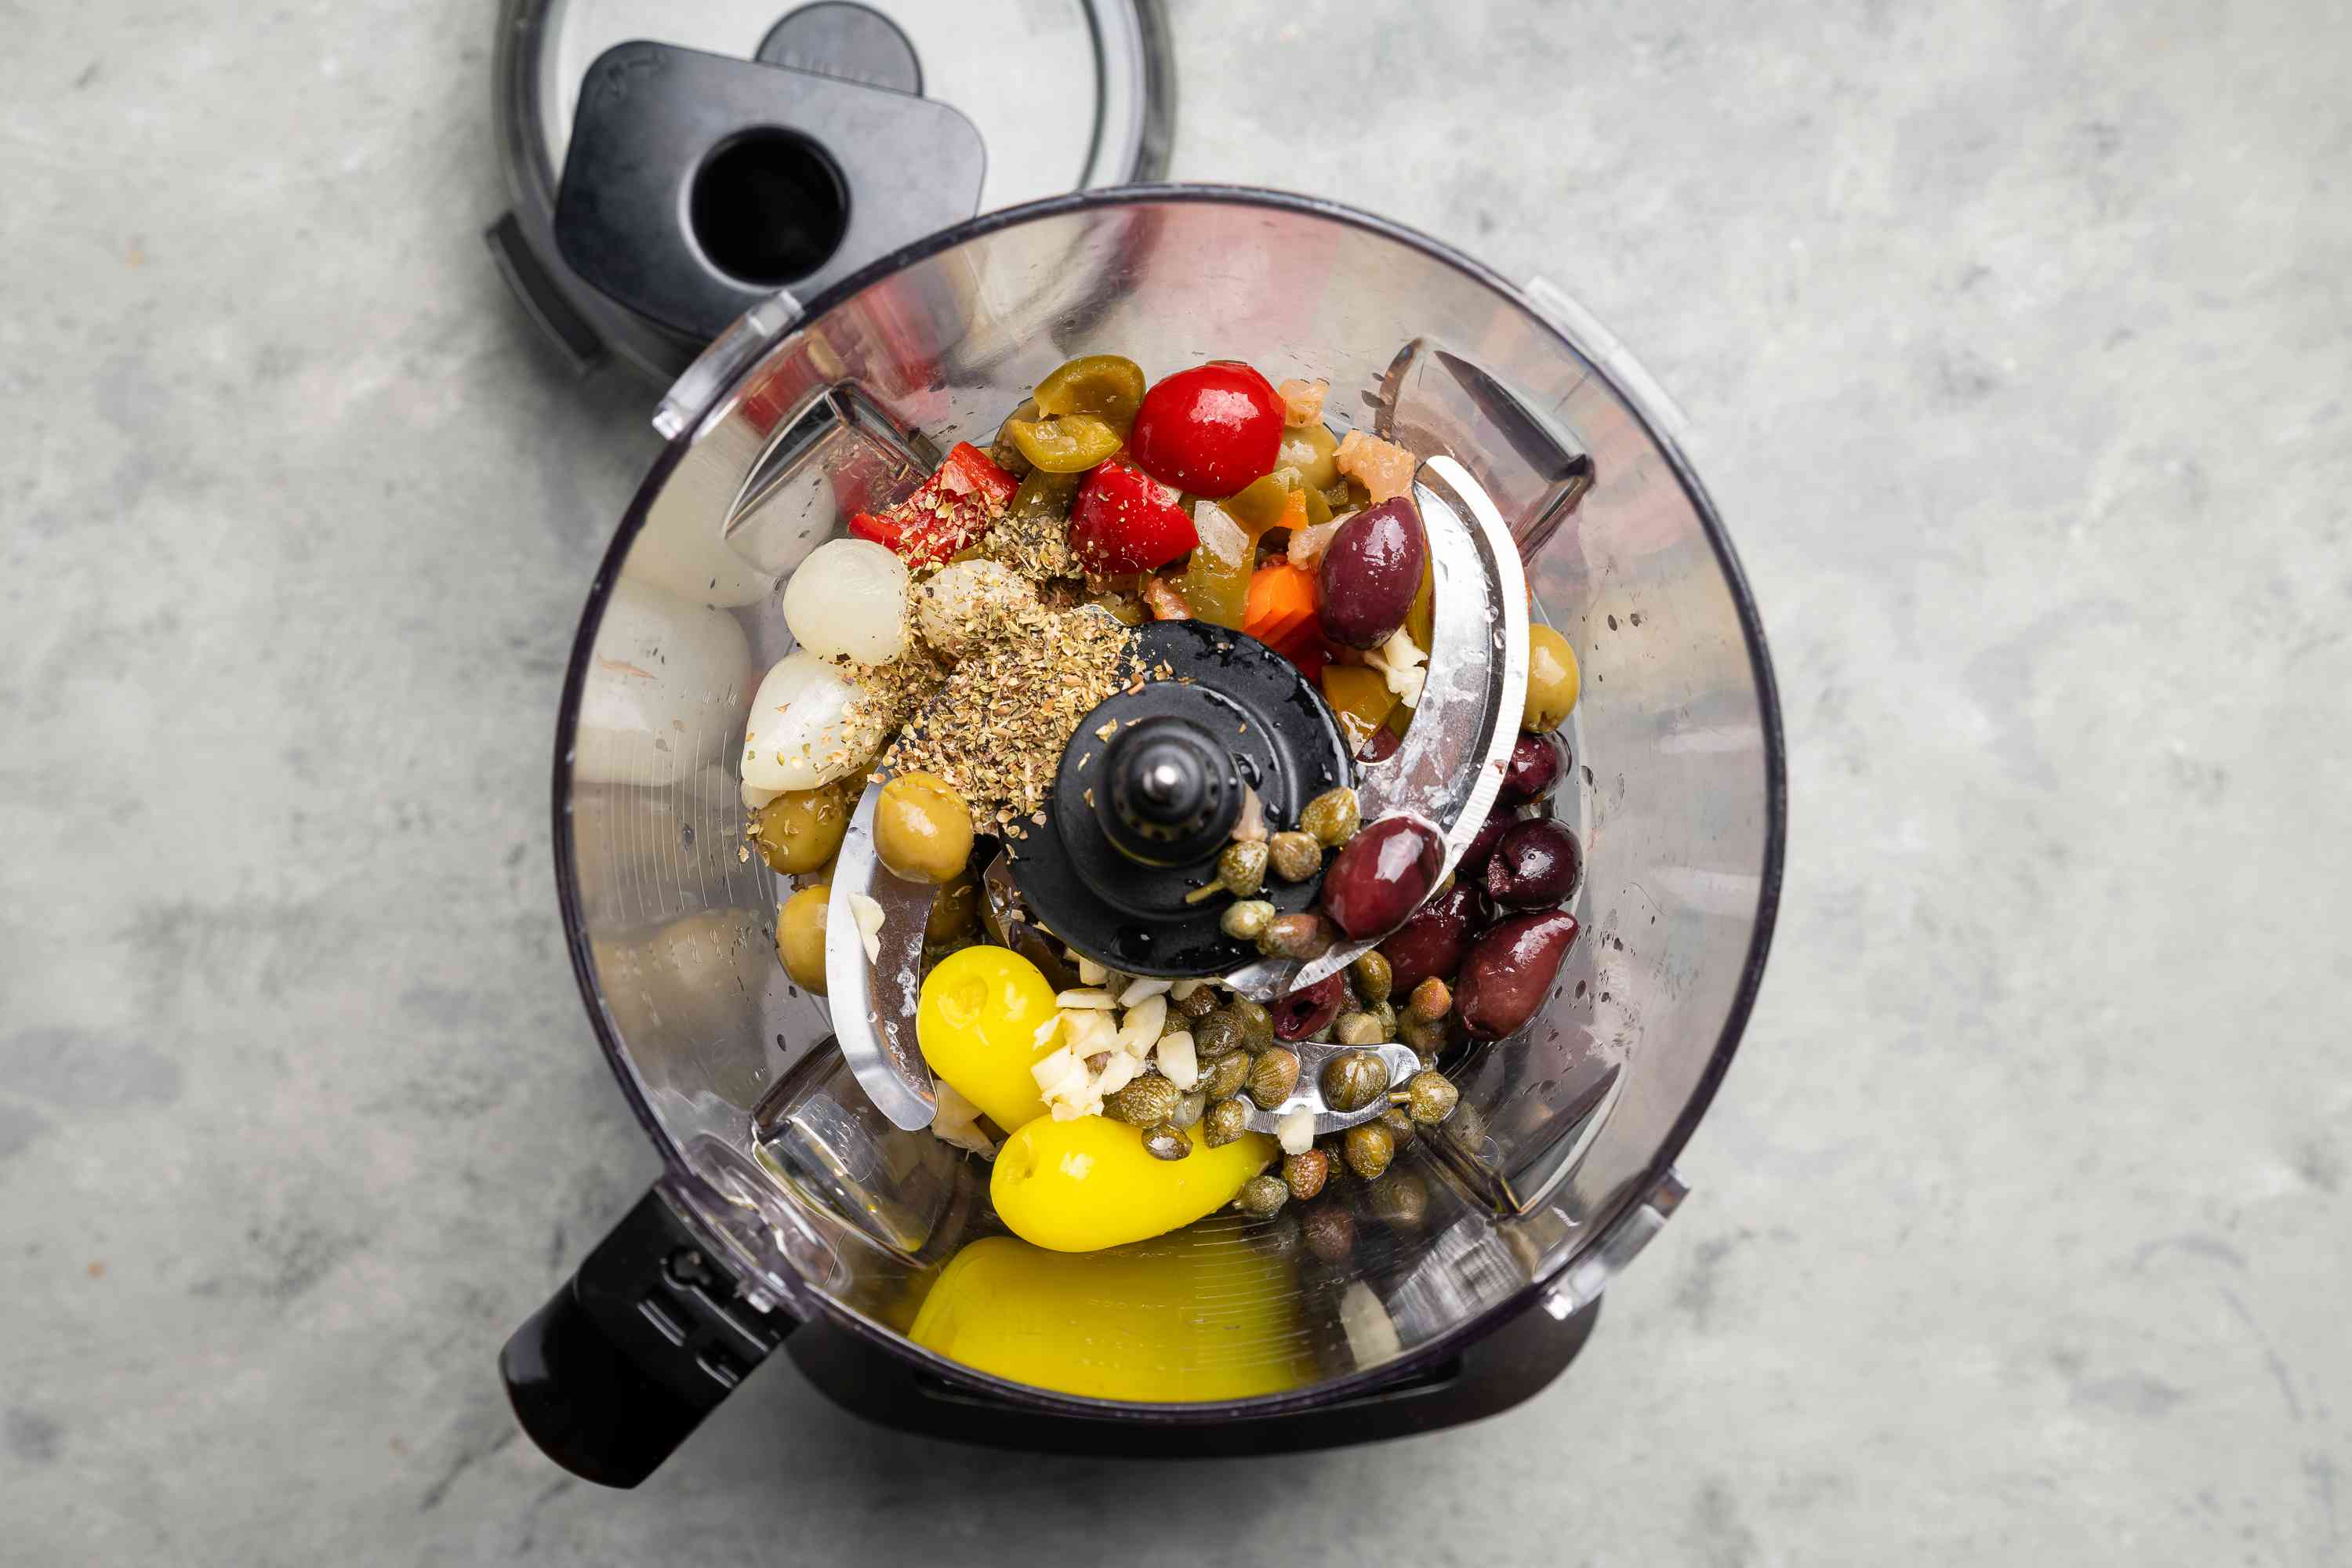 Drained ingredients in a food processor along with garlic, oregano, pepper, lemon juice, and olive oil